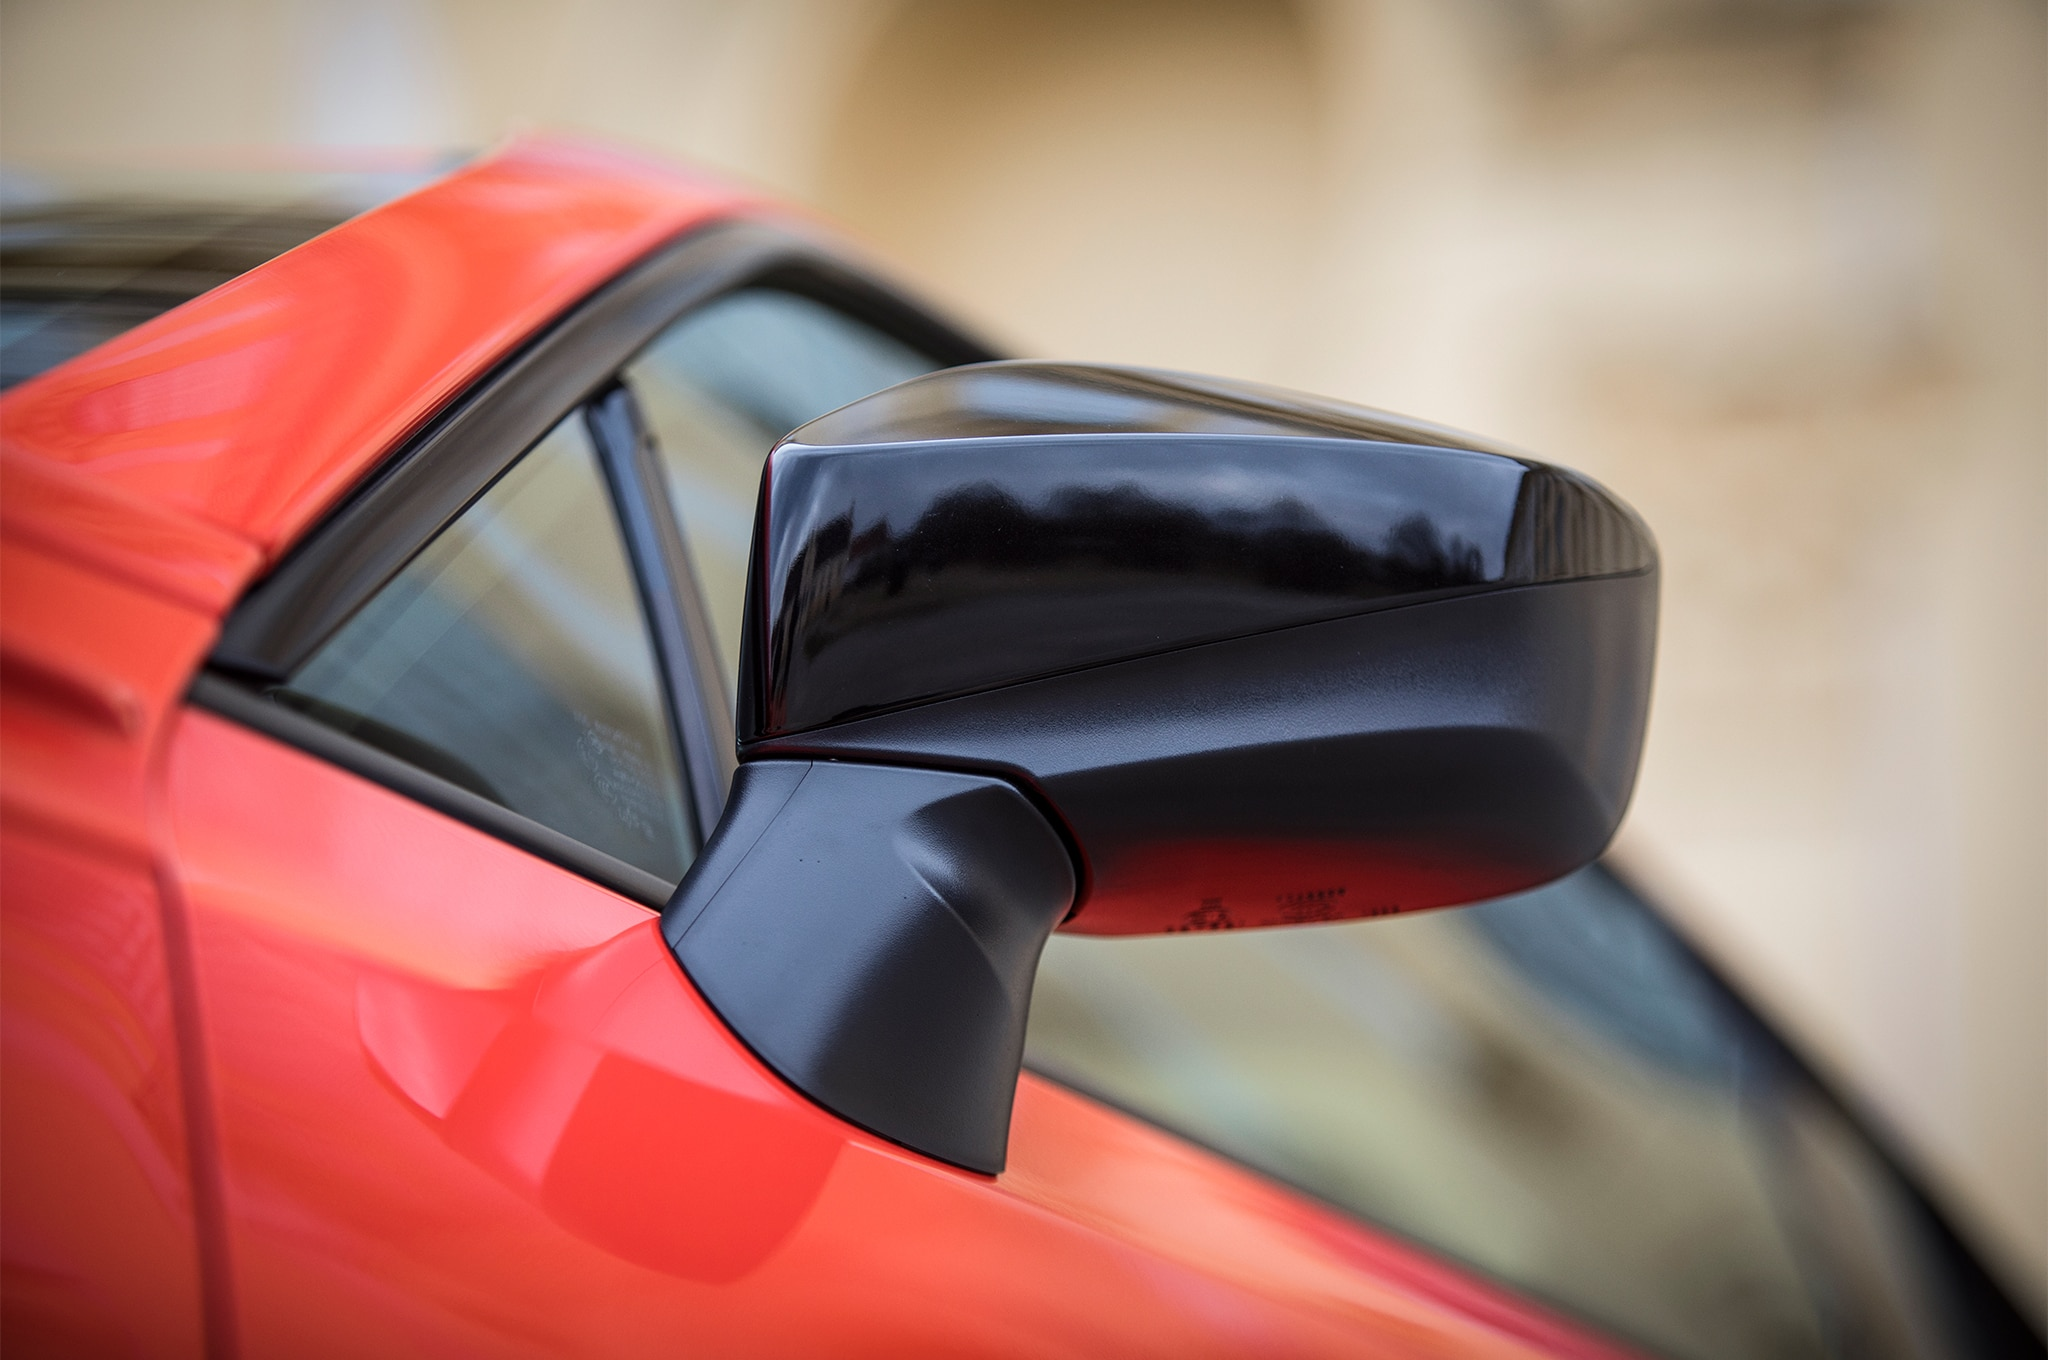 2017 Toyota 86 860 Special Edition side mirror 1